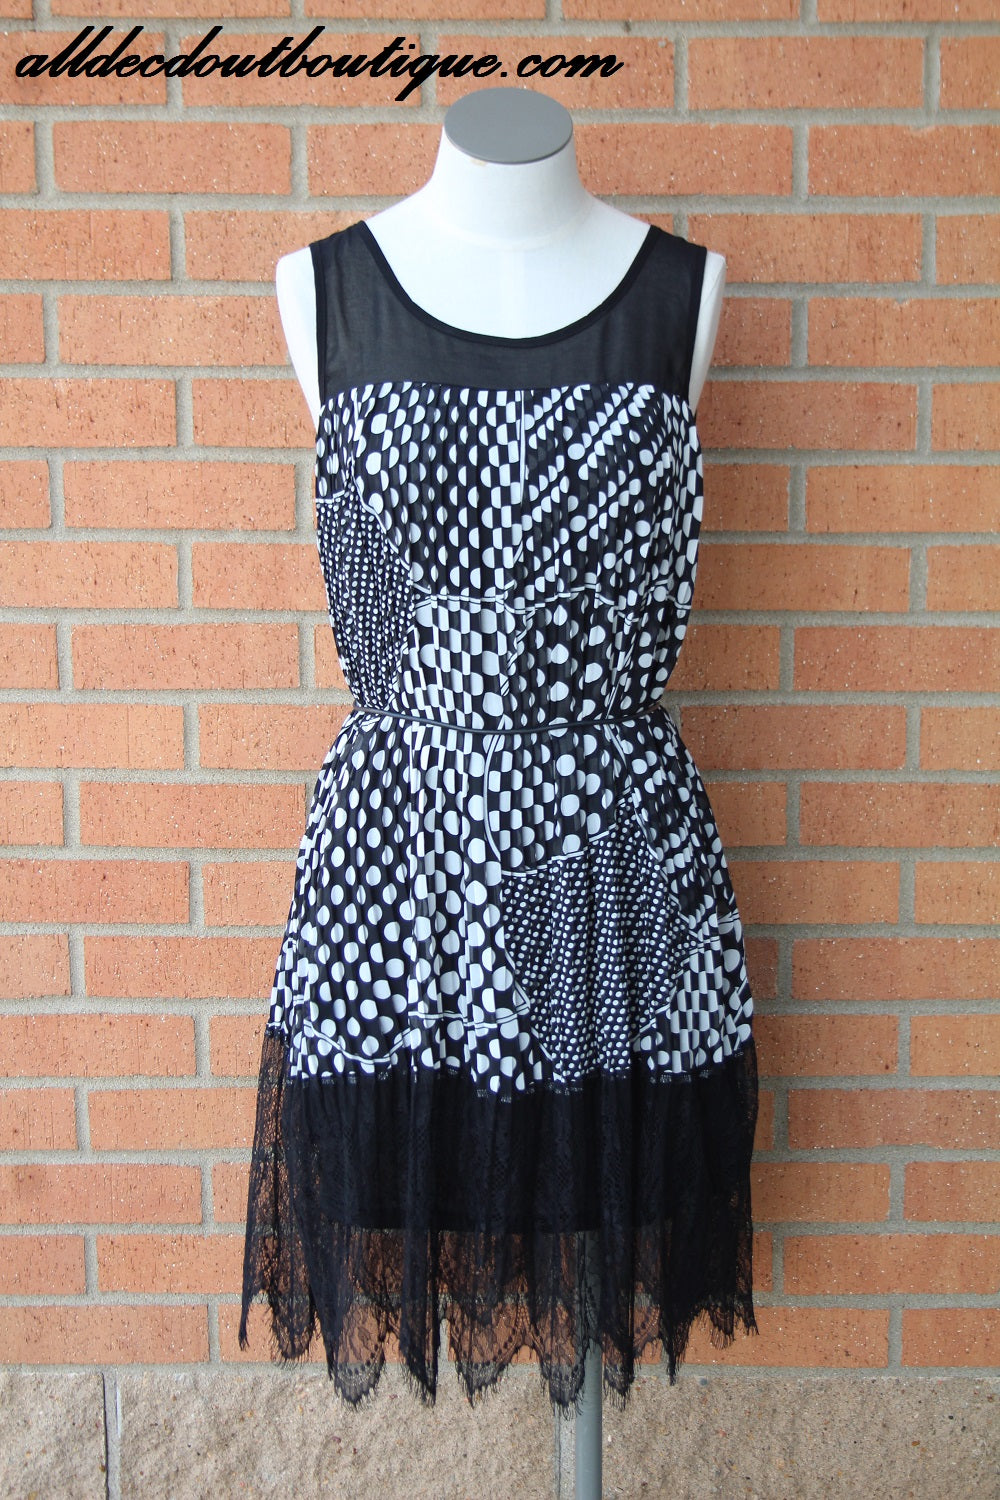 Ina | Black and White Polka Dot Lace Midi Dress